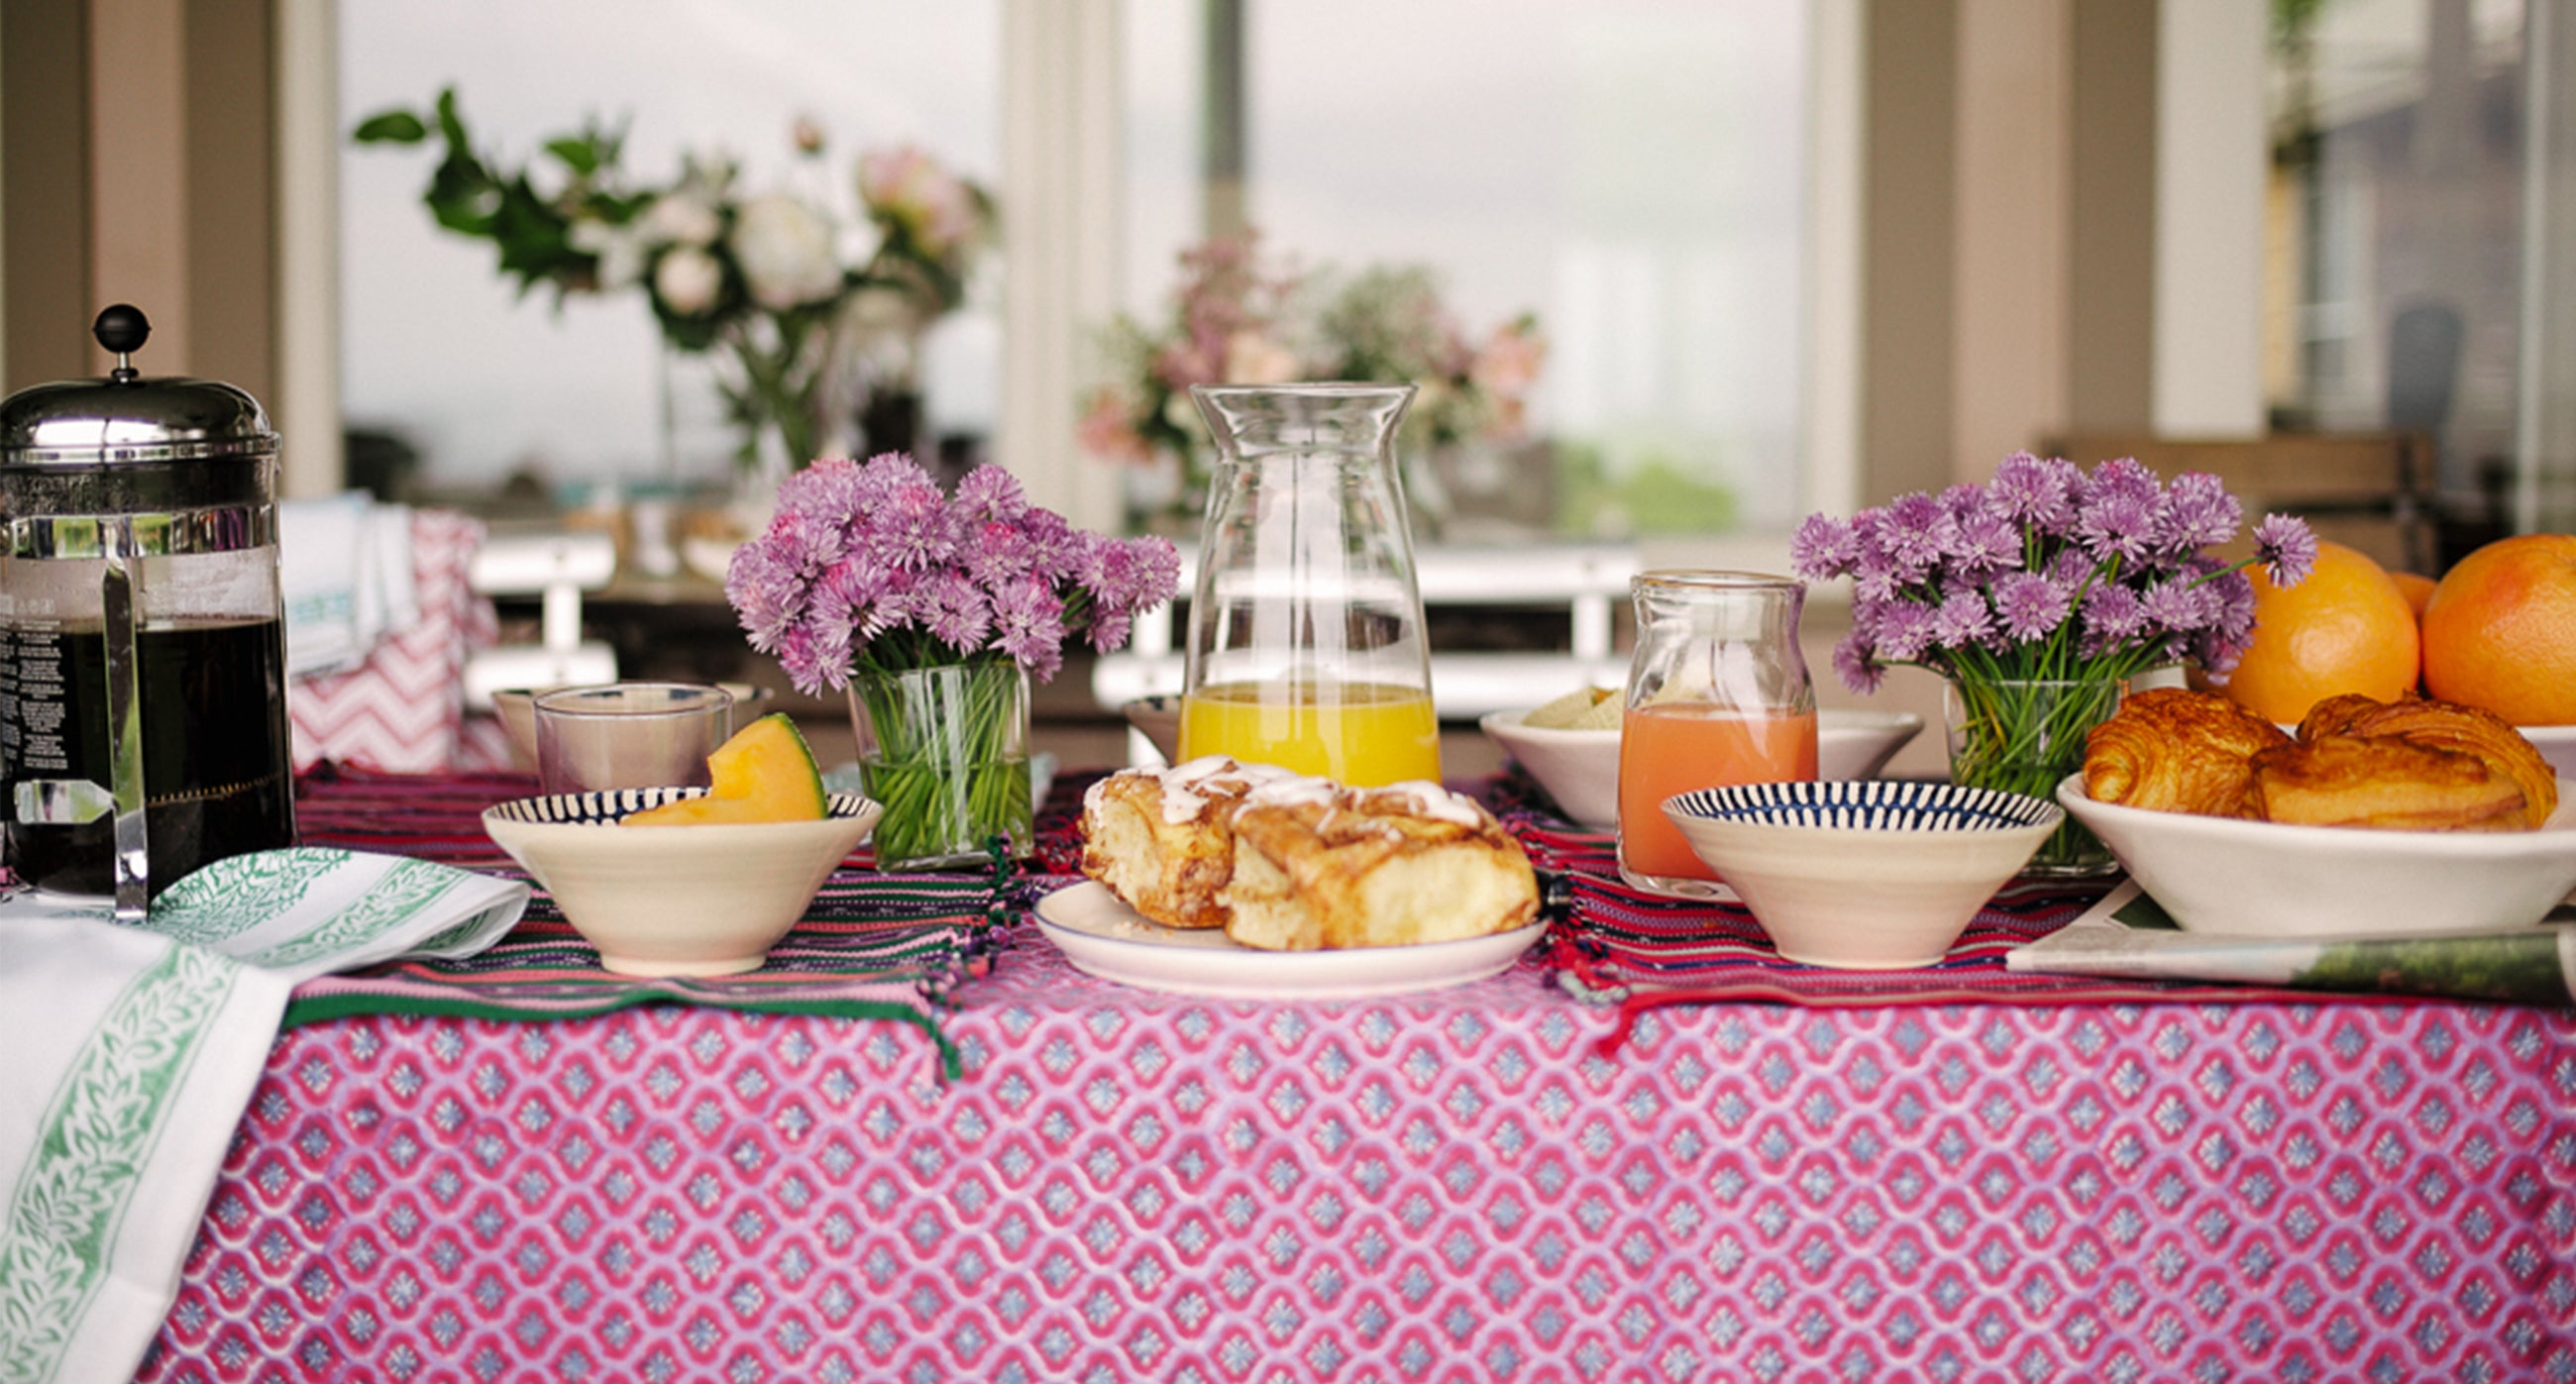 Table setting by Lucy Cuneo using Wicklewood tablecloths, placemats and ceramics